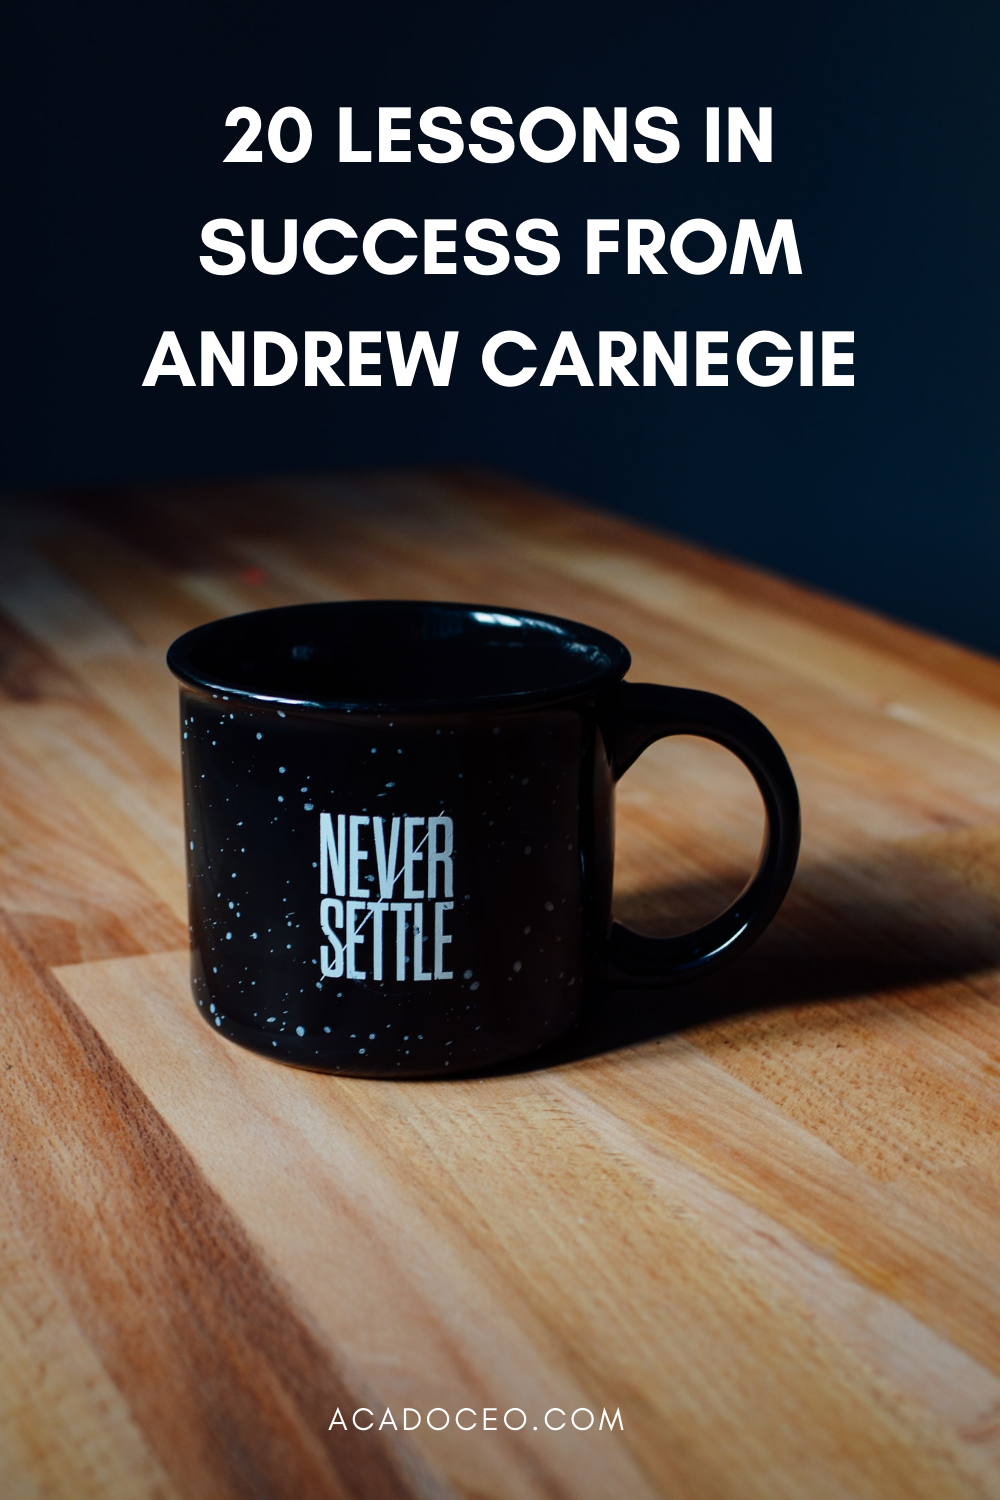 20 LESSONS IN SUCCESS FROM ANDREW CARNEGIE